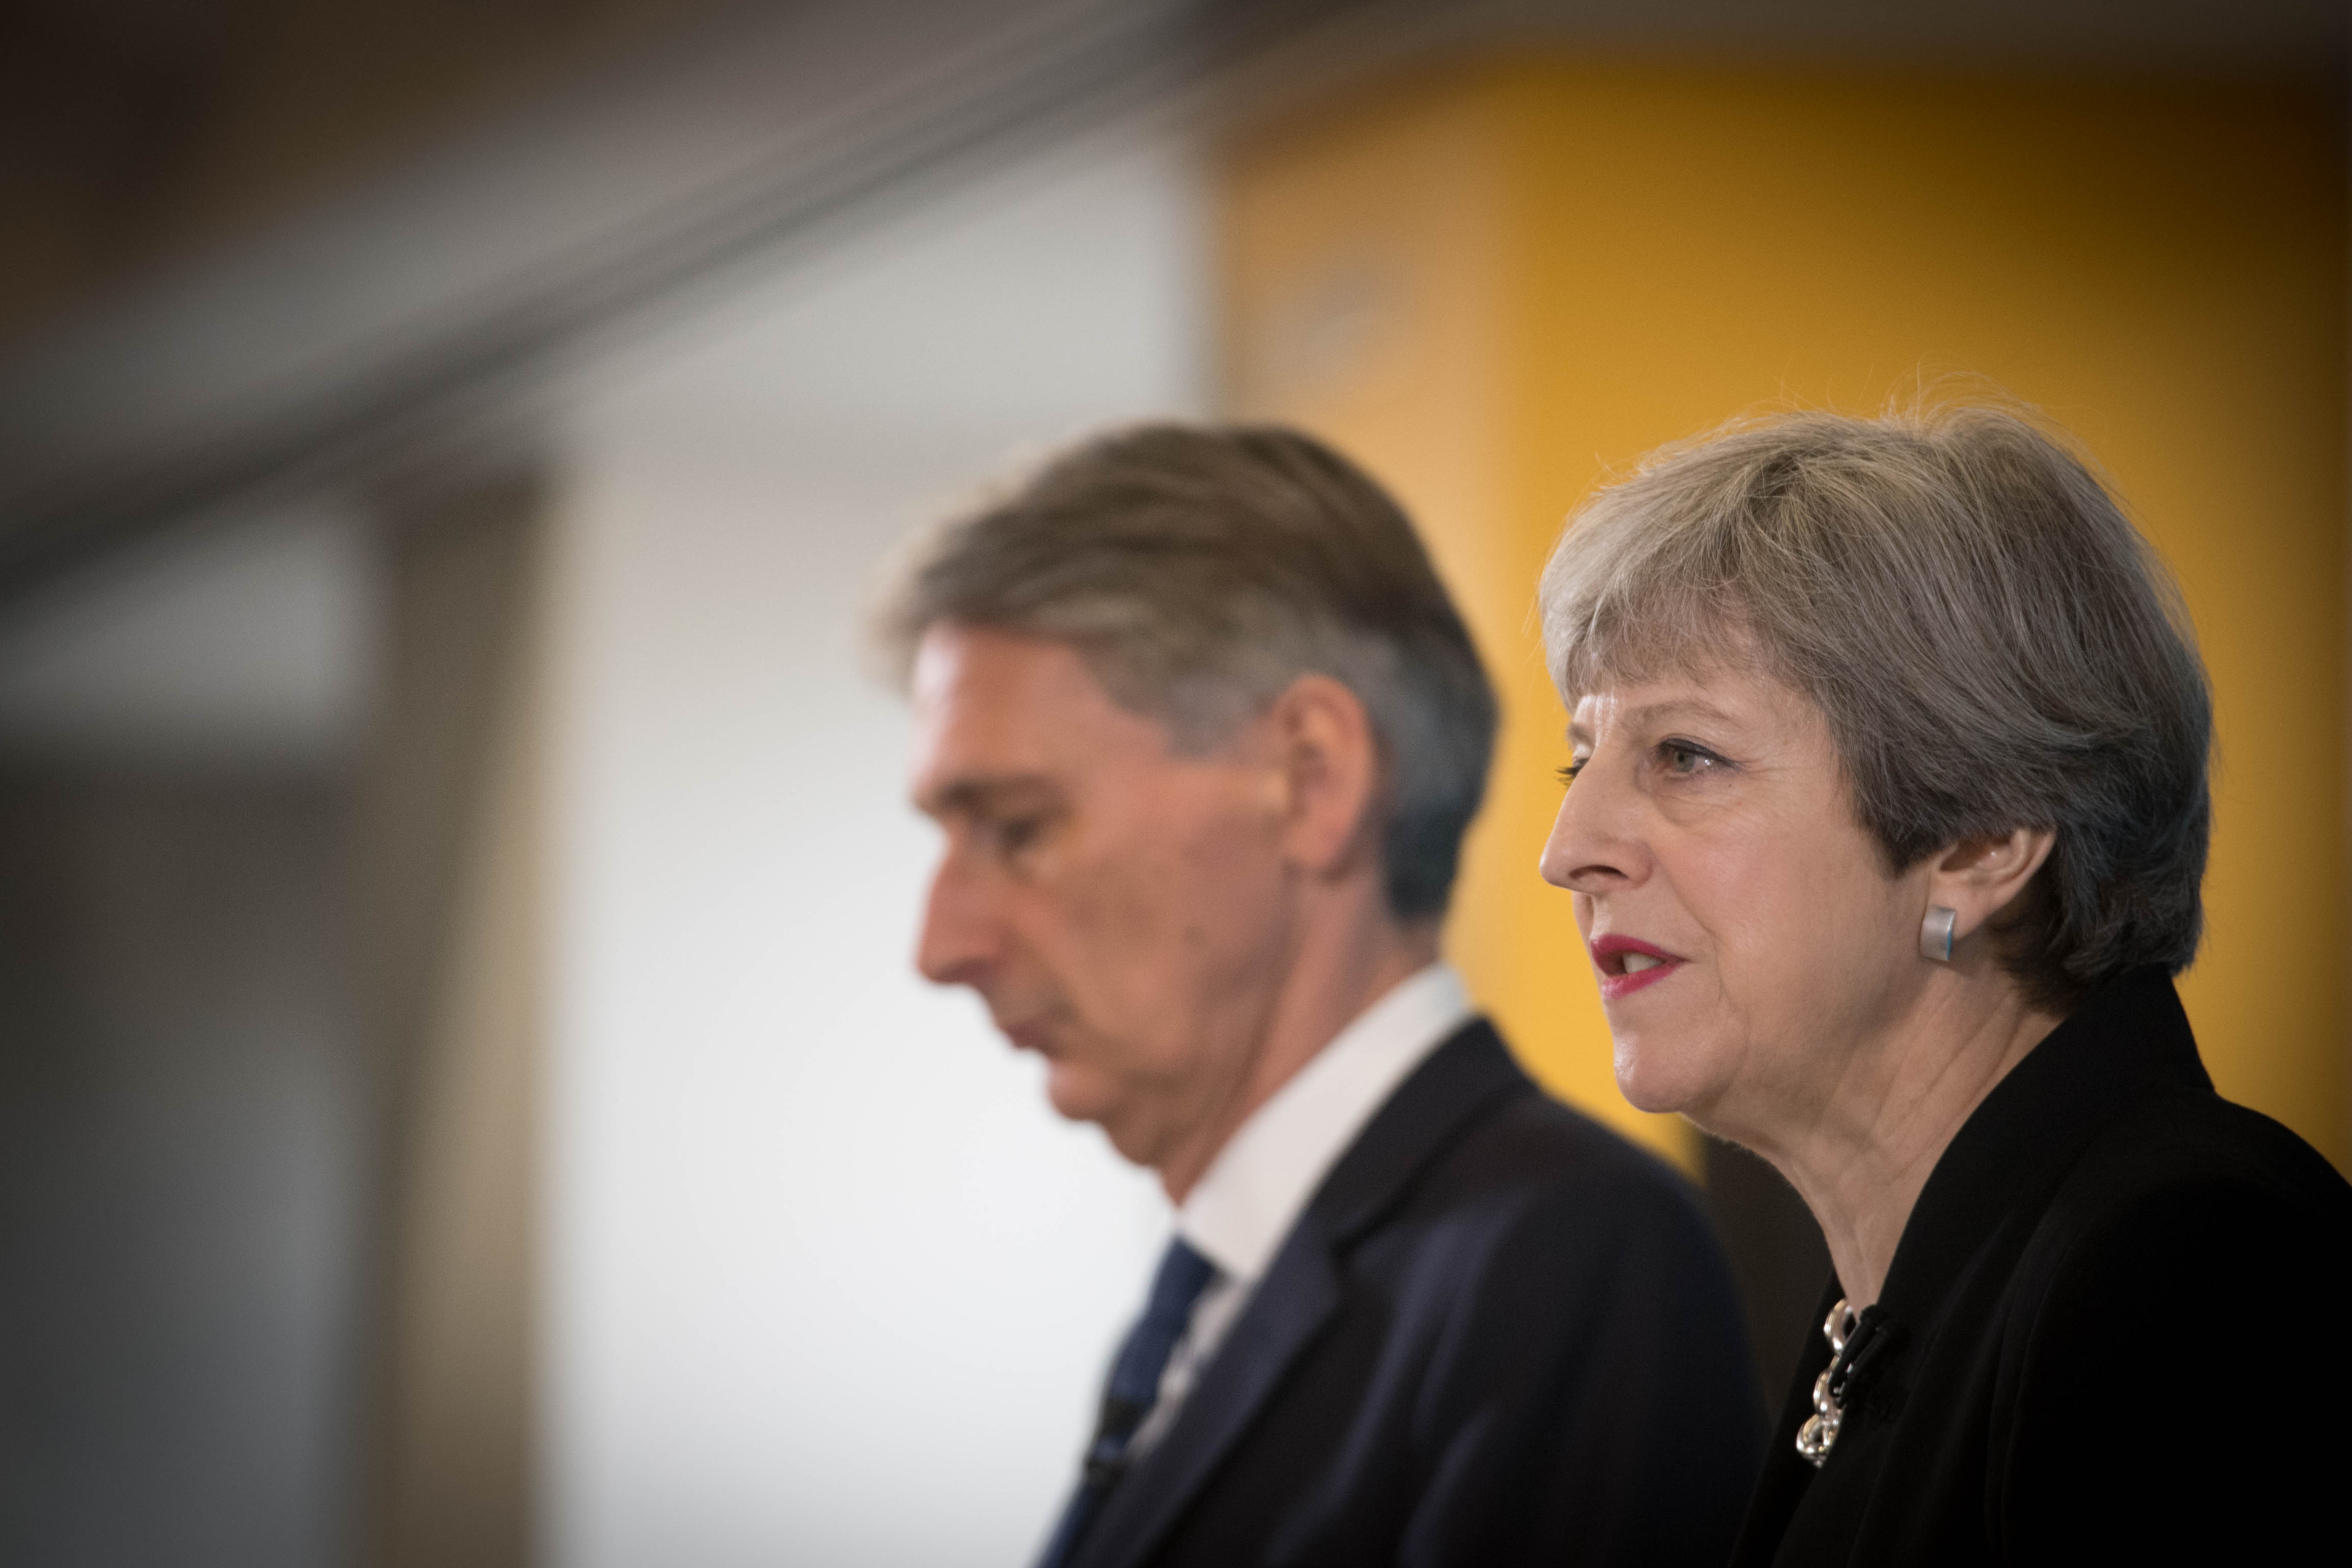 Conservative party leader Theresa May and Chancellor Philip Hammond during a general election campaign (Stefan Rousseau/PA Wire)